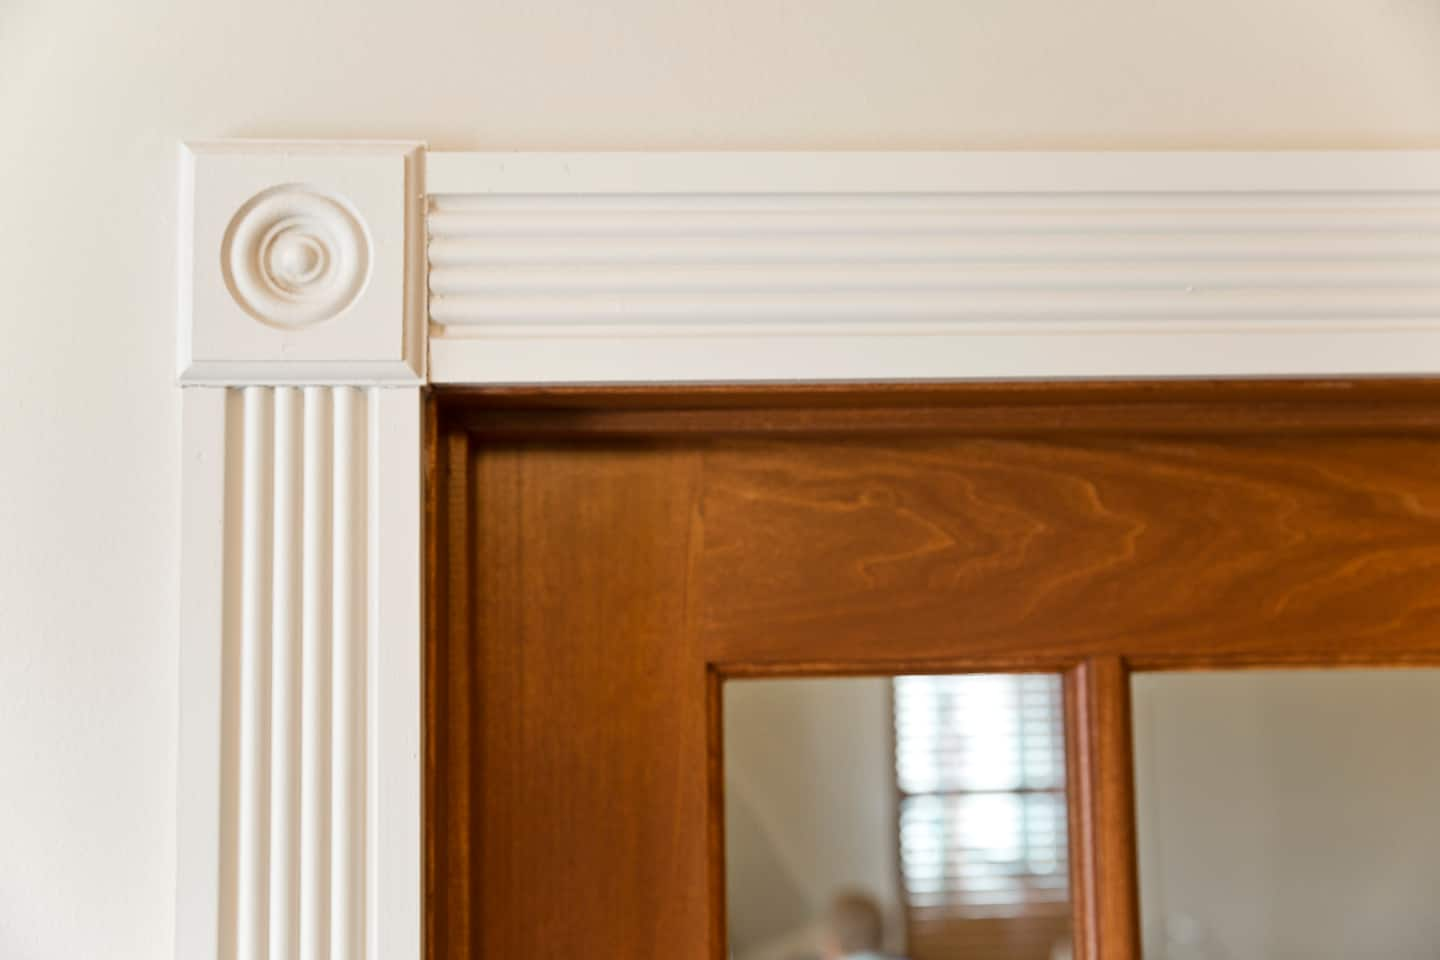 Window trim molding - Trim In A Home